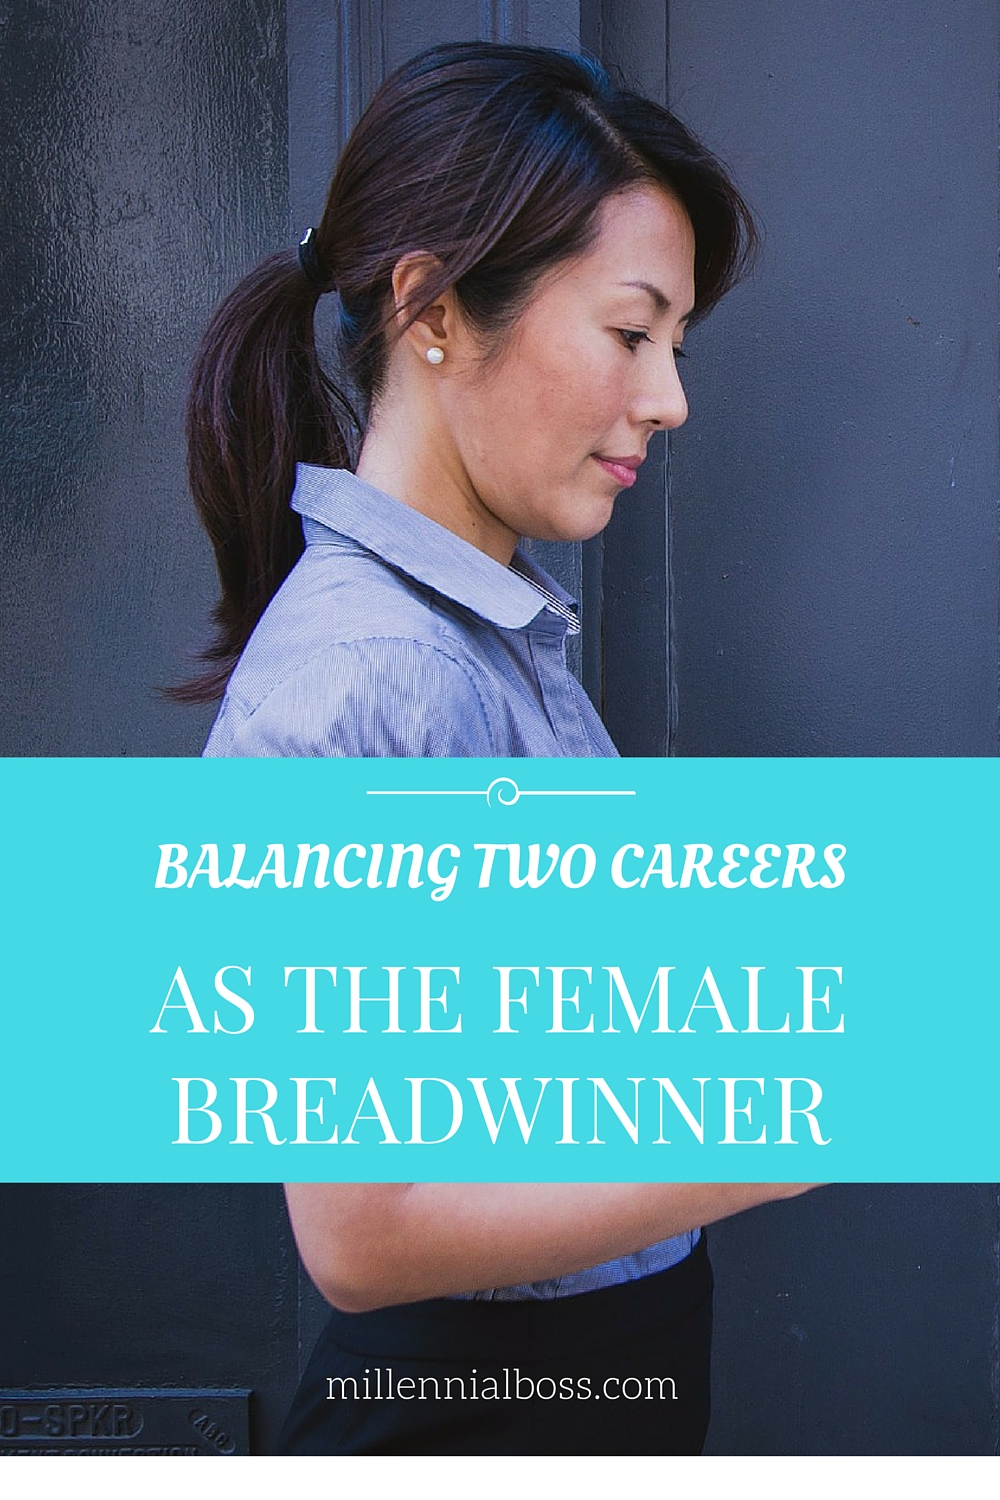 Balancing Two Careers as the Female Breadwinner